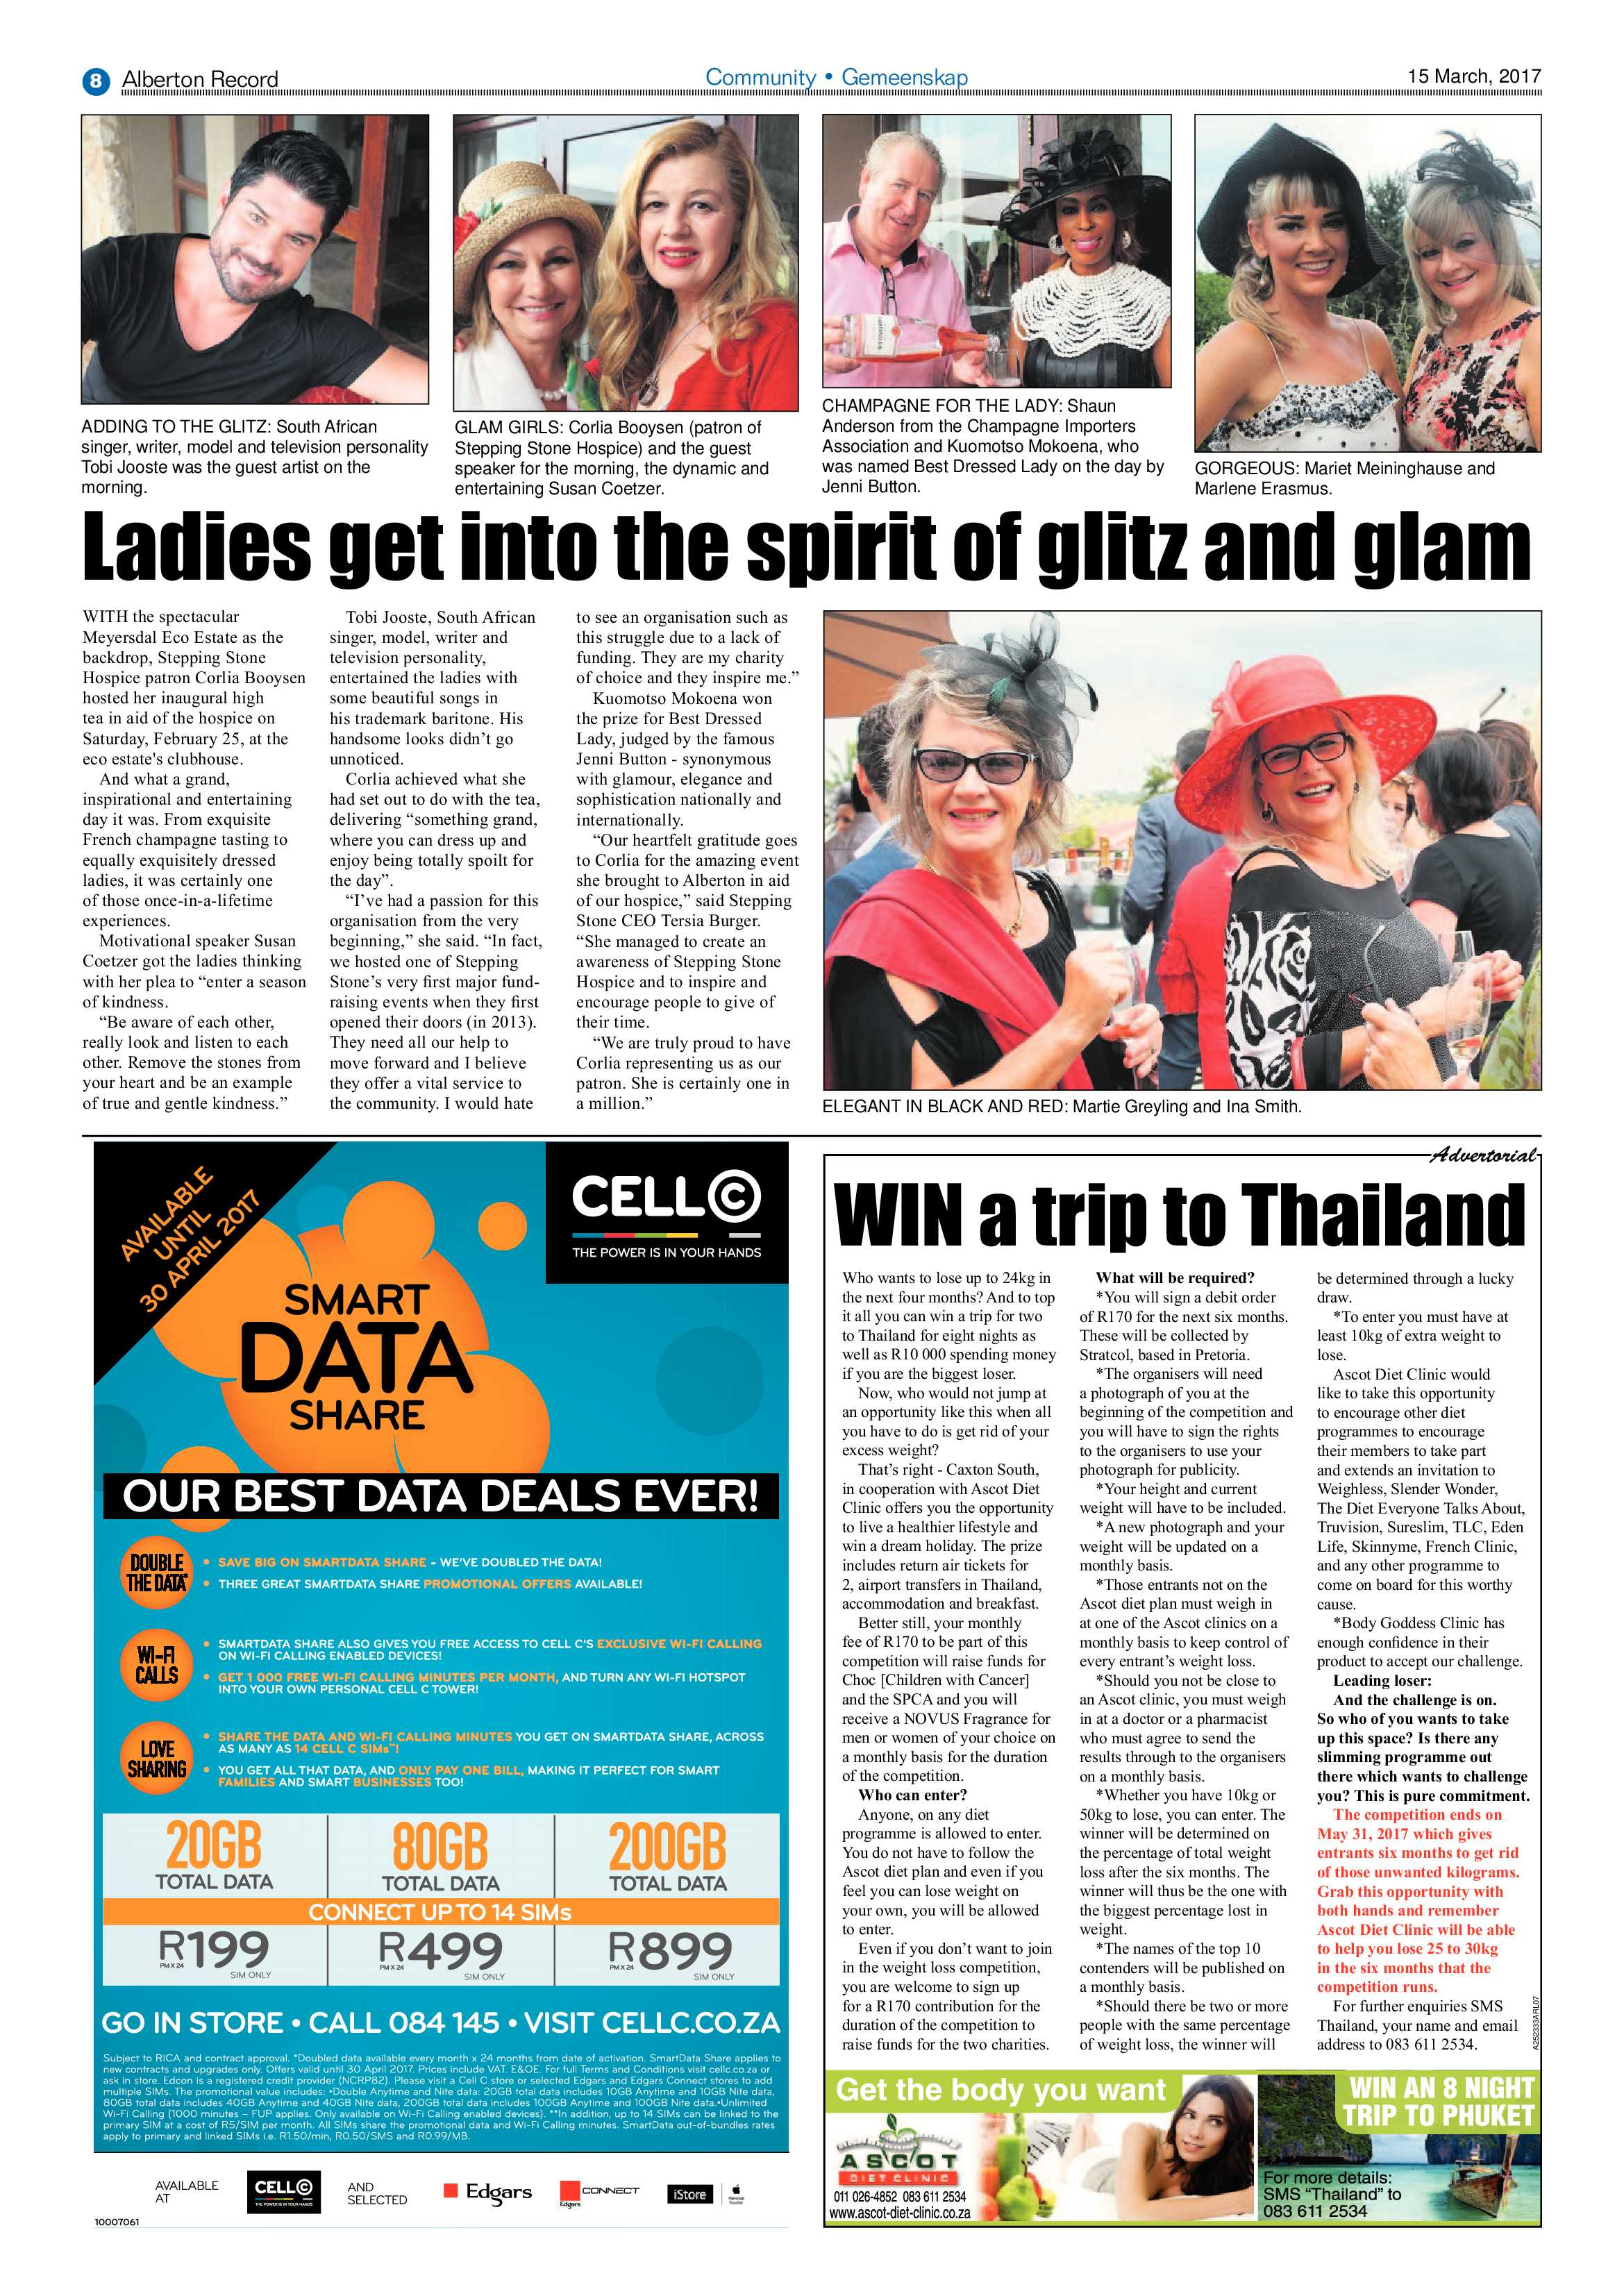 alberton-record-15-march-2017-epapers-page-8